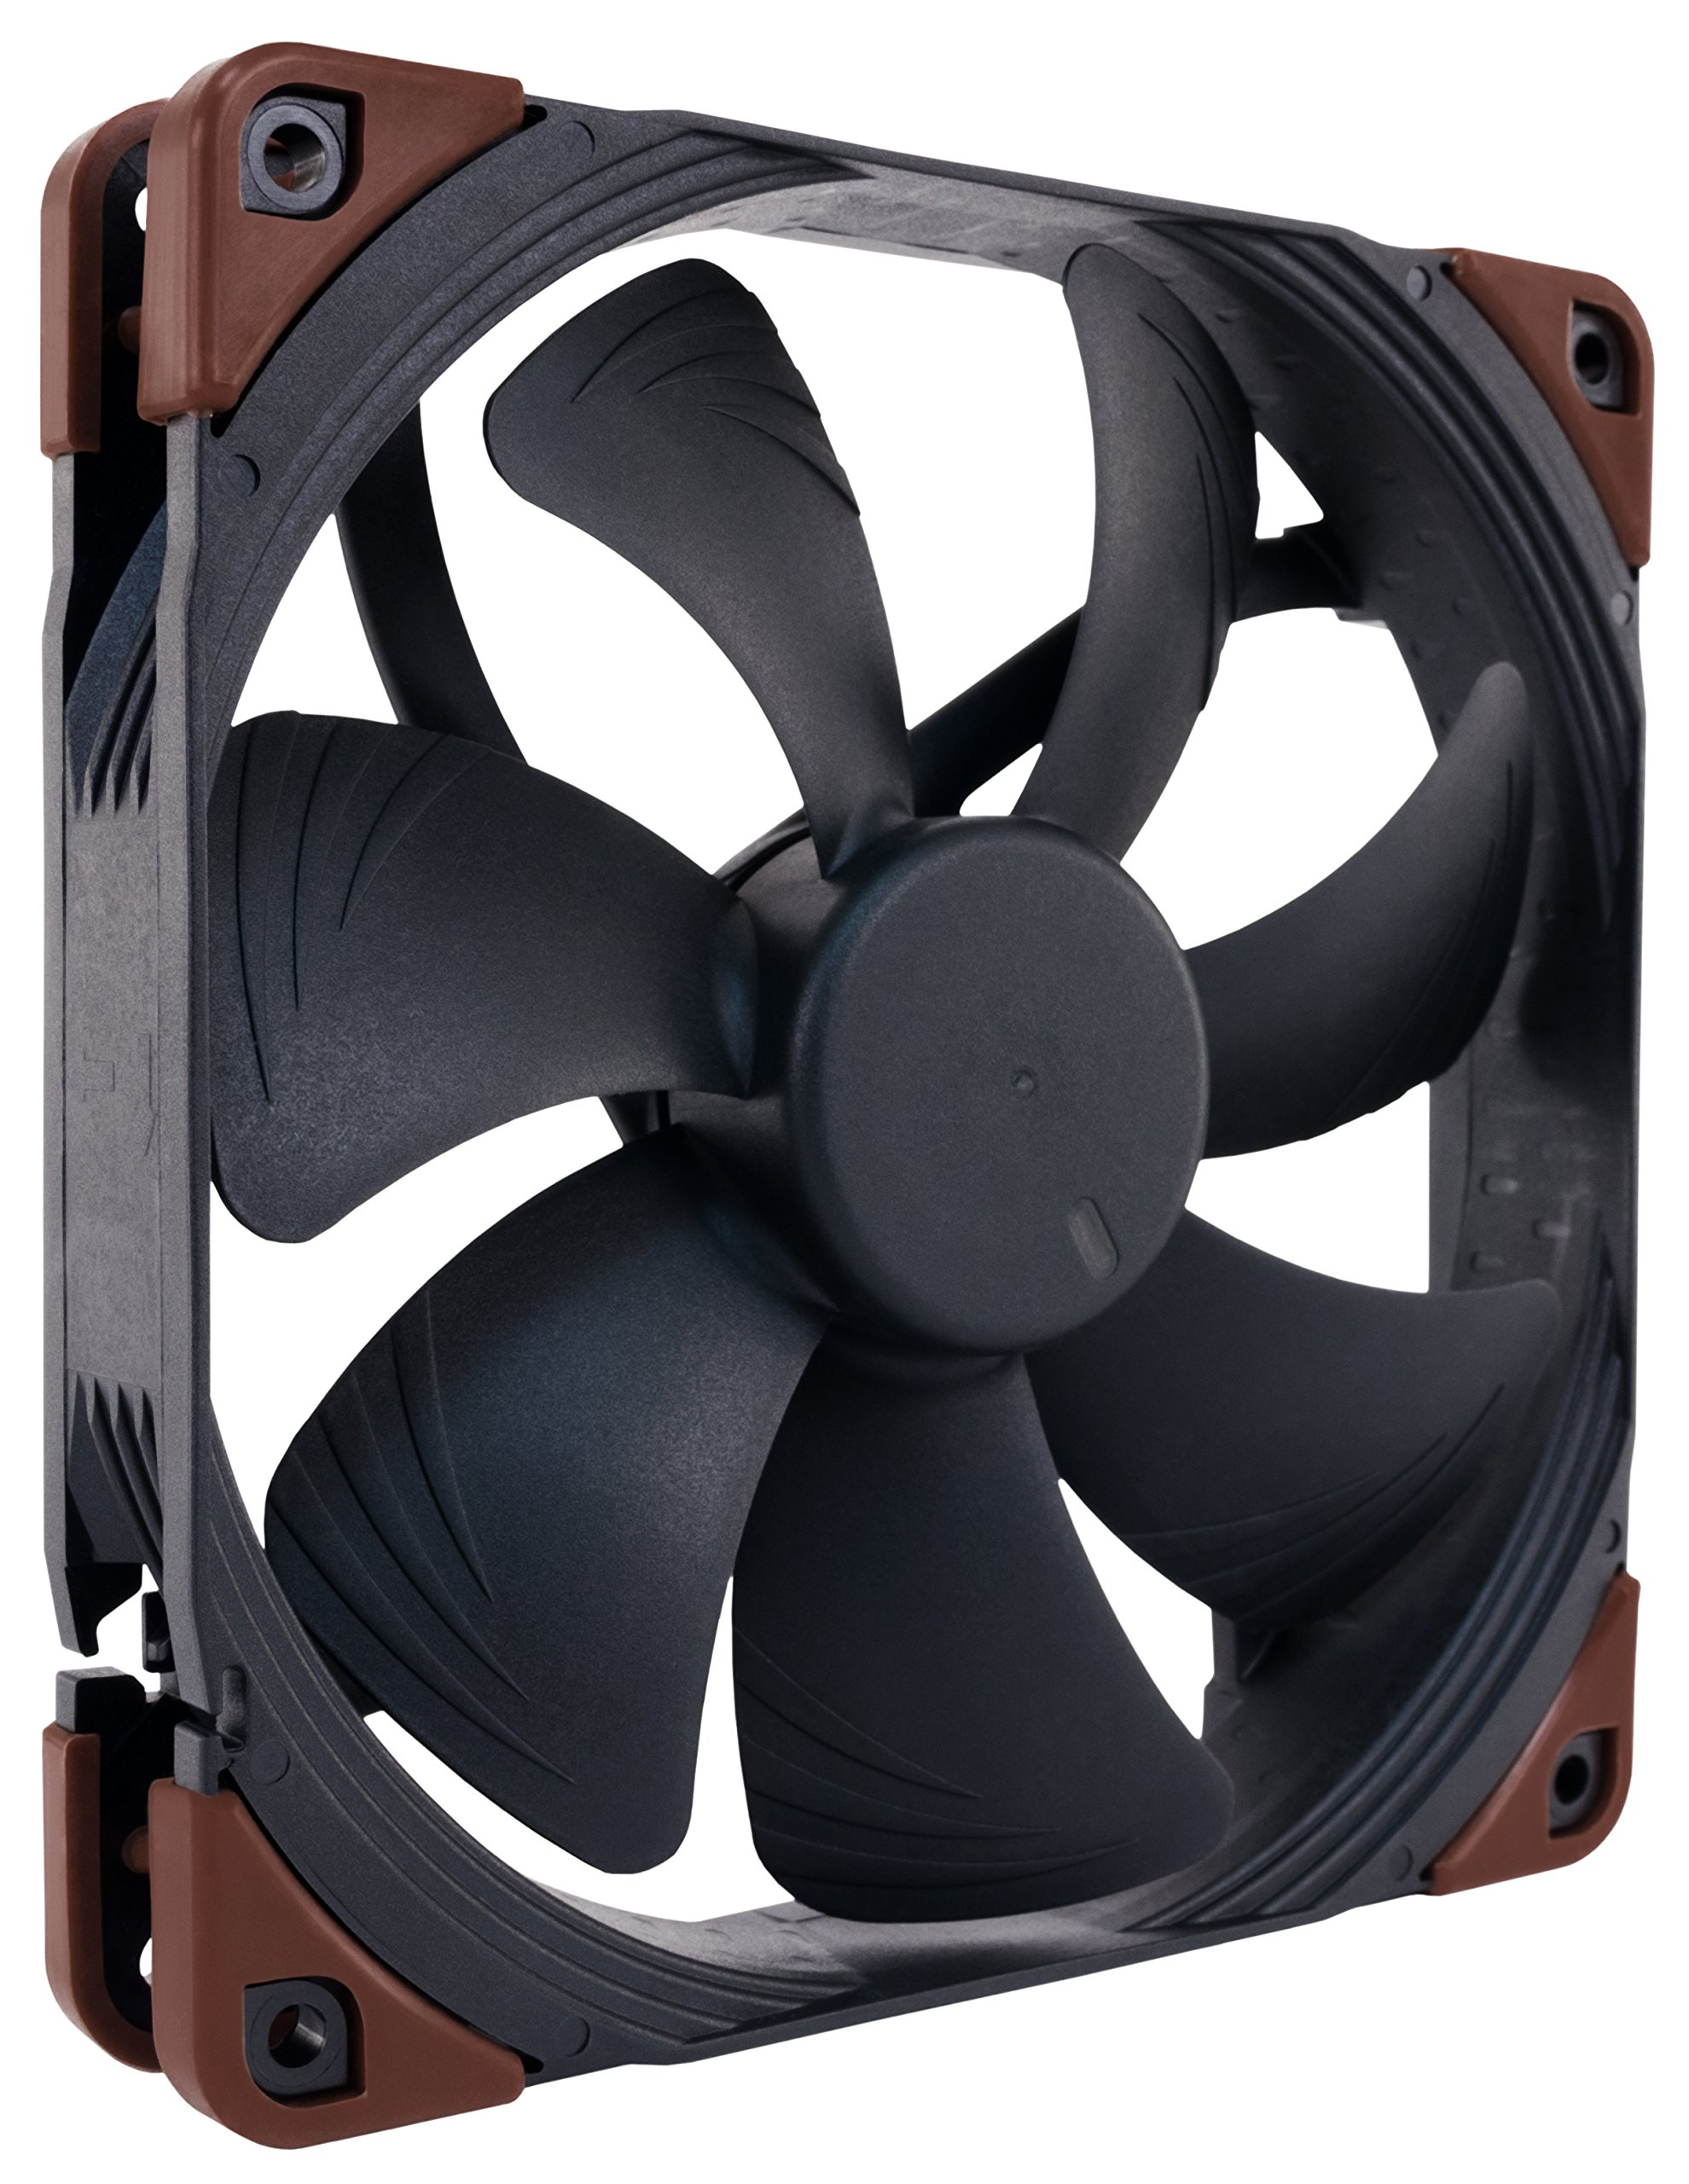 Noctua SSO2 Bearing Fan Retail Cooling NF-A14 iPPC-3000 PWM by noctua